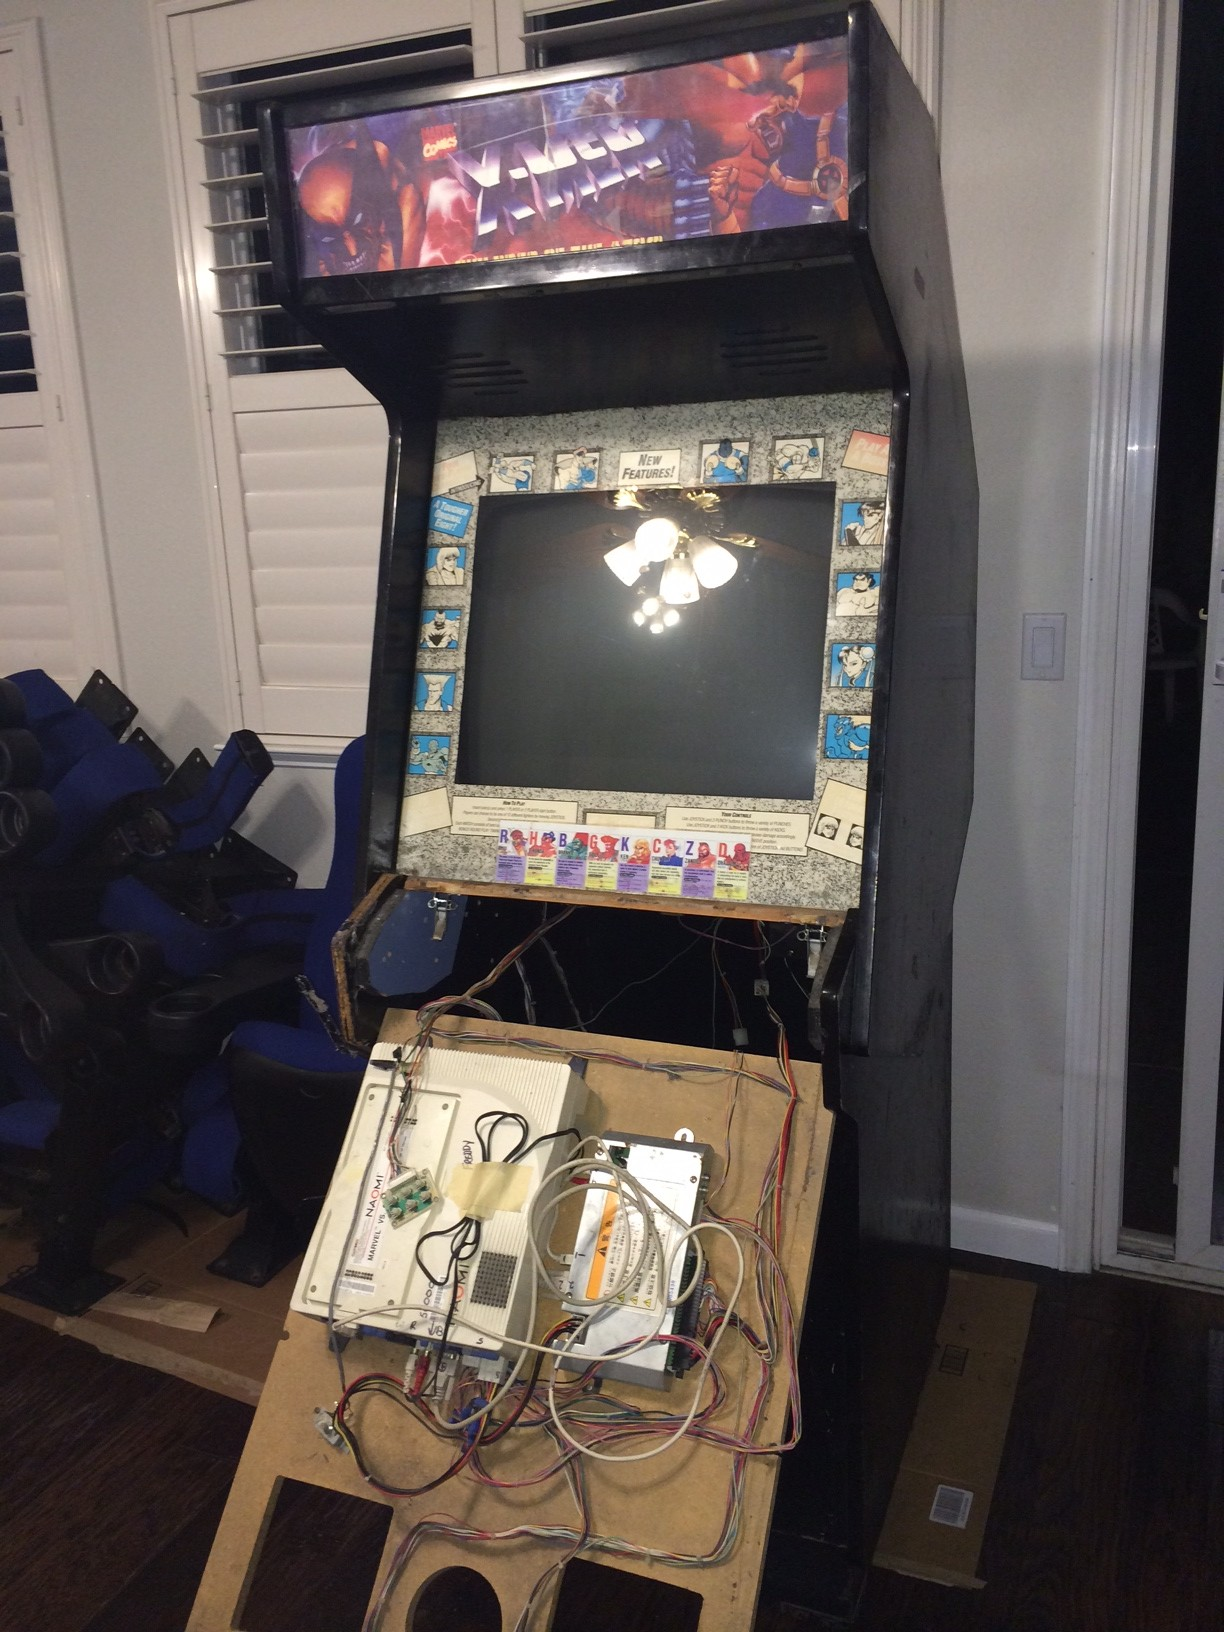 I ... & Dynamo HS-9 Cab Restore - Project Showcase - Arcade-Projects Forums